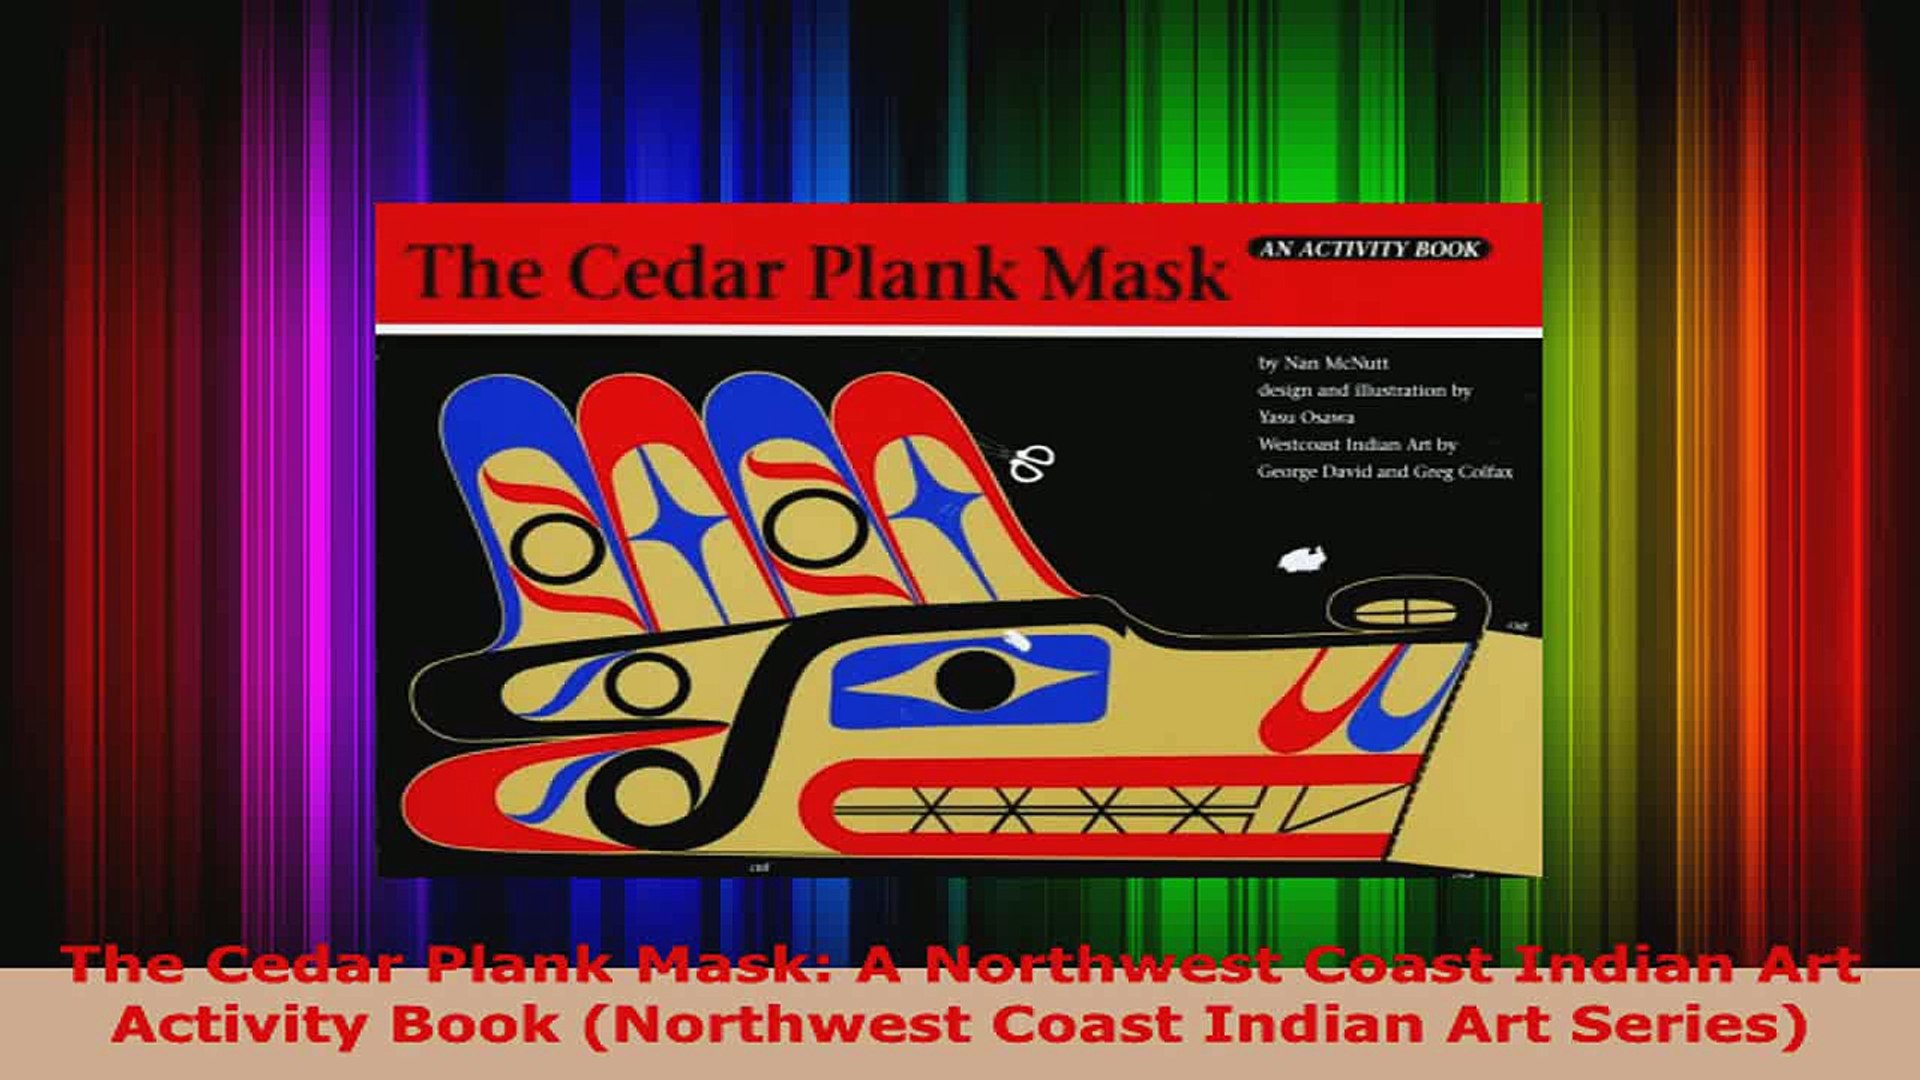 Download  The Cedar Plank Mask A Northwest Coast Indian Art Activity Book Northwest Coast Indian PDF